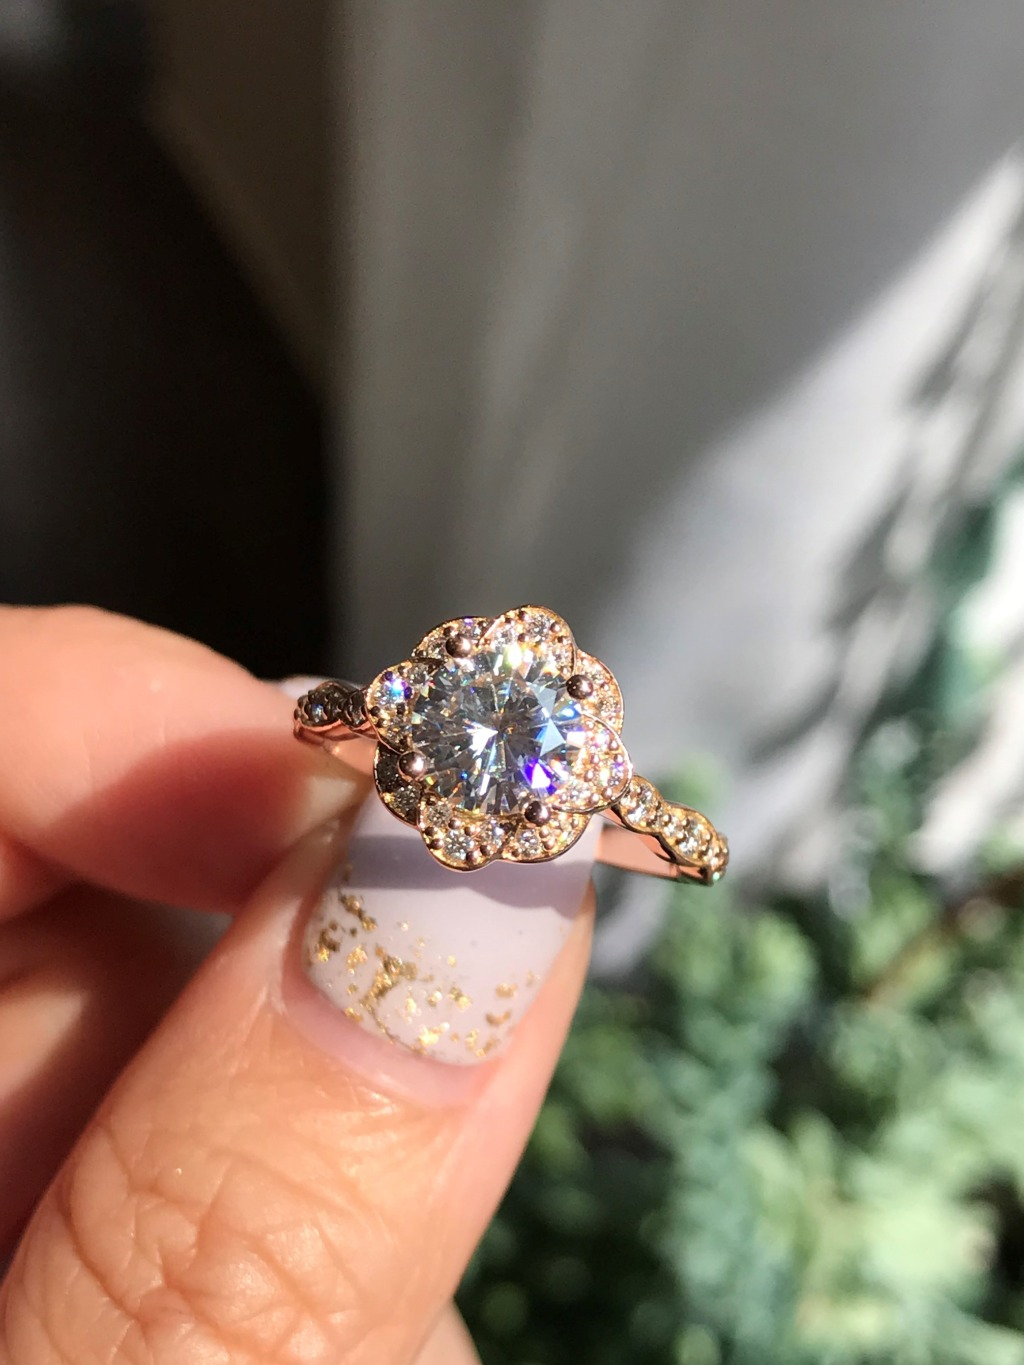 Our newest Vintage Floral Scalloped Engagement Ring! With Round Cut Moissanite center stone and floral design, this beauty radiates